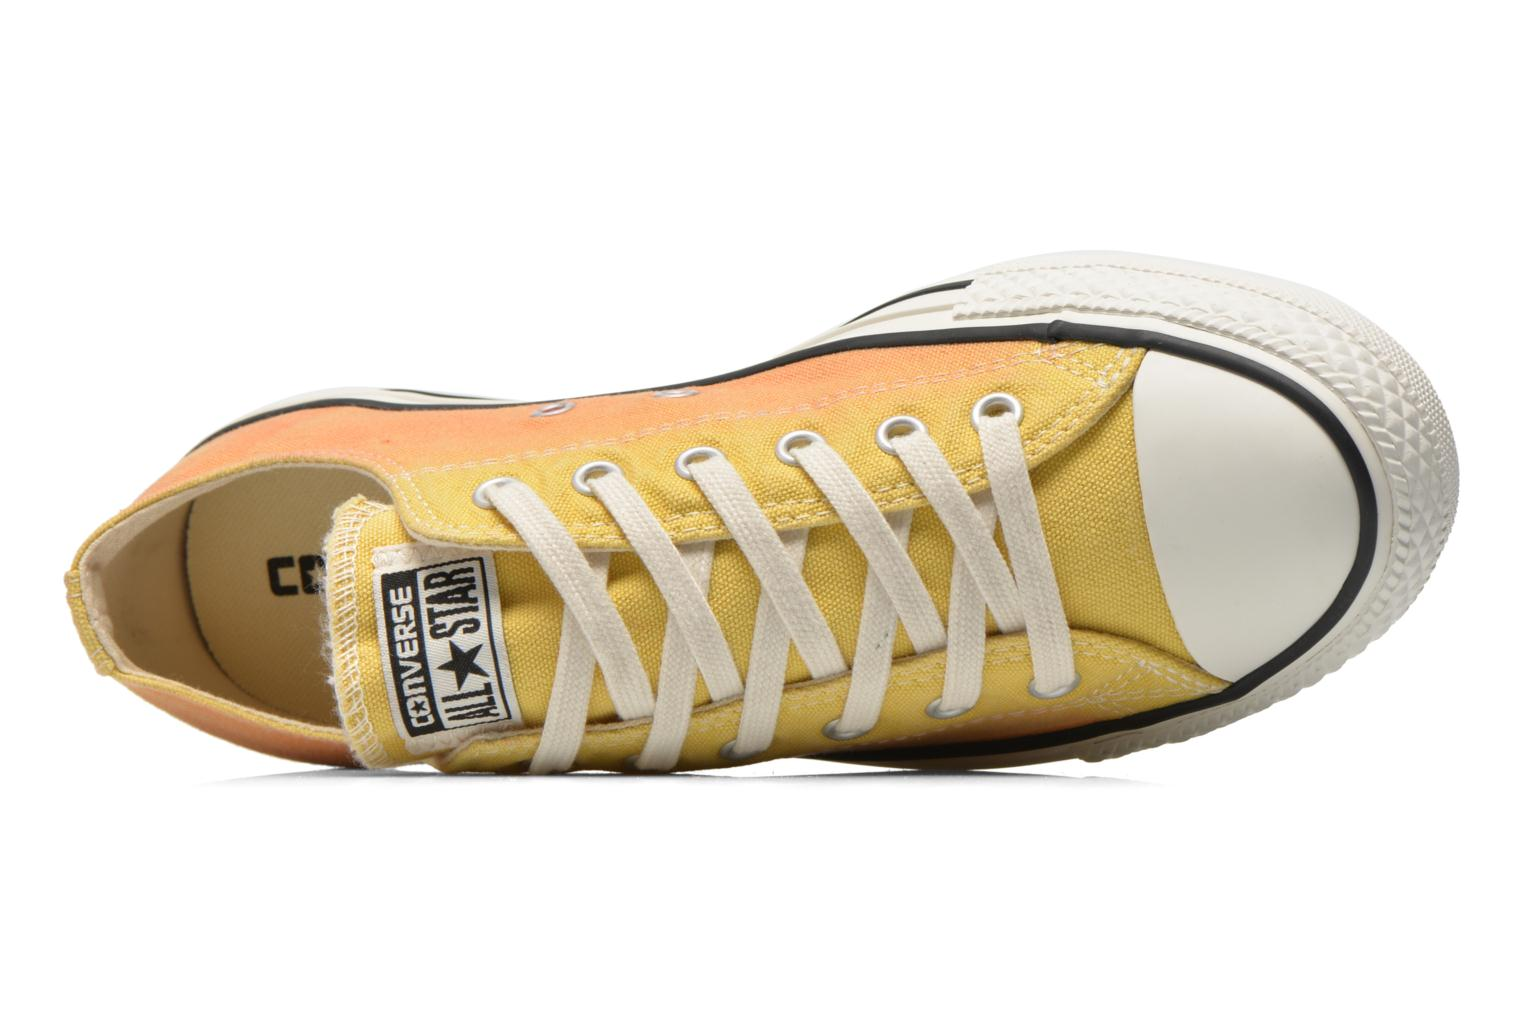 Chuck Taylor All Star Ox Sunset Wash W Cactus Blossom/Daybreak Pink